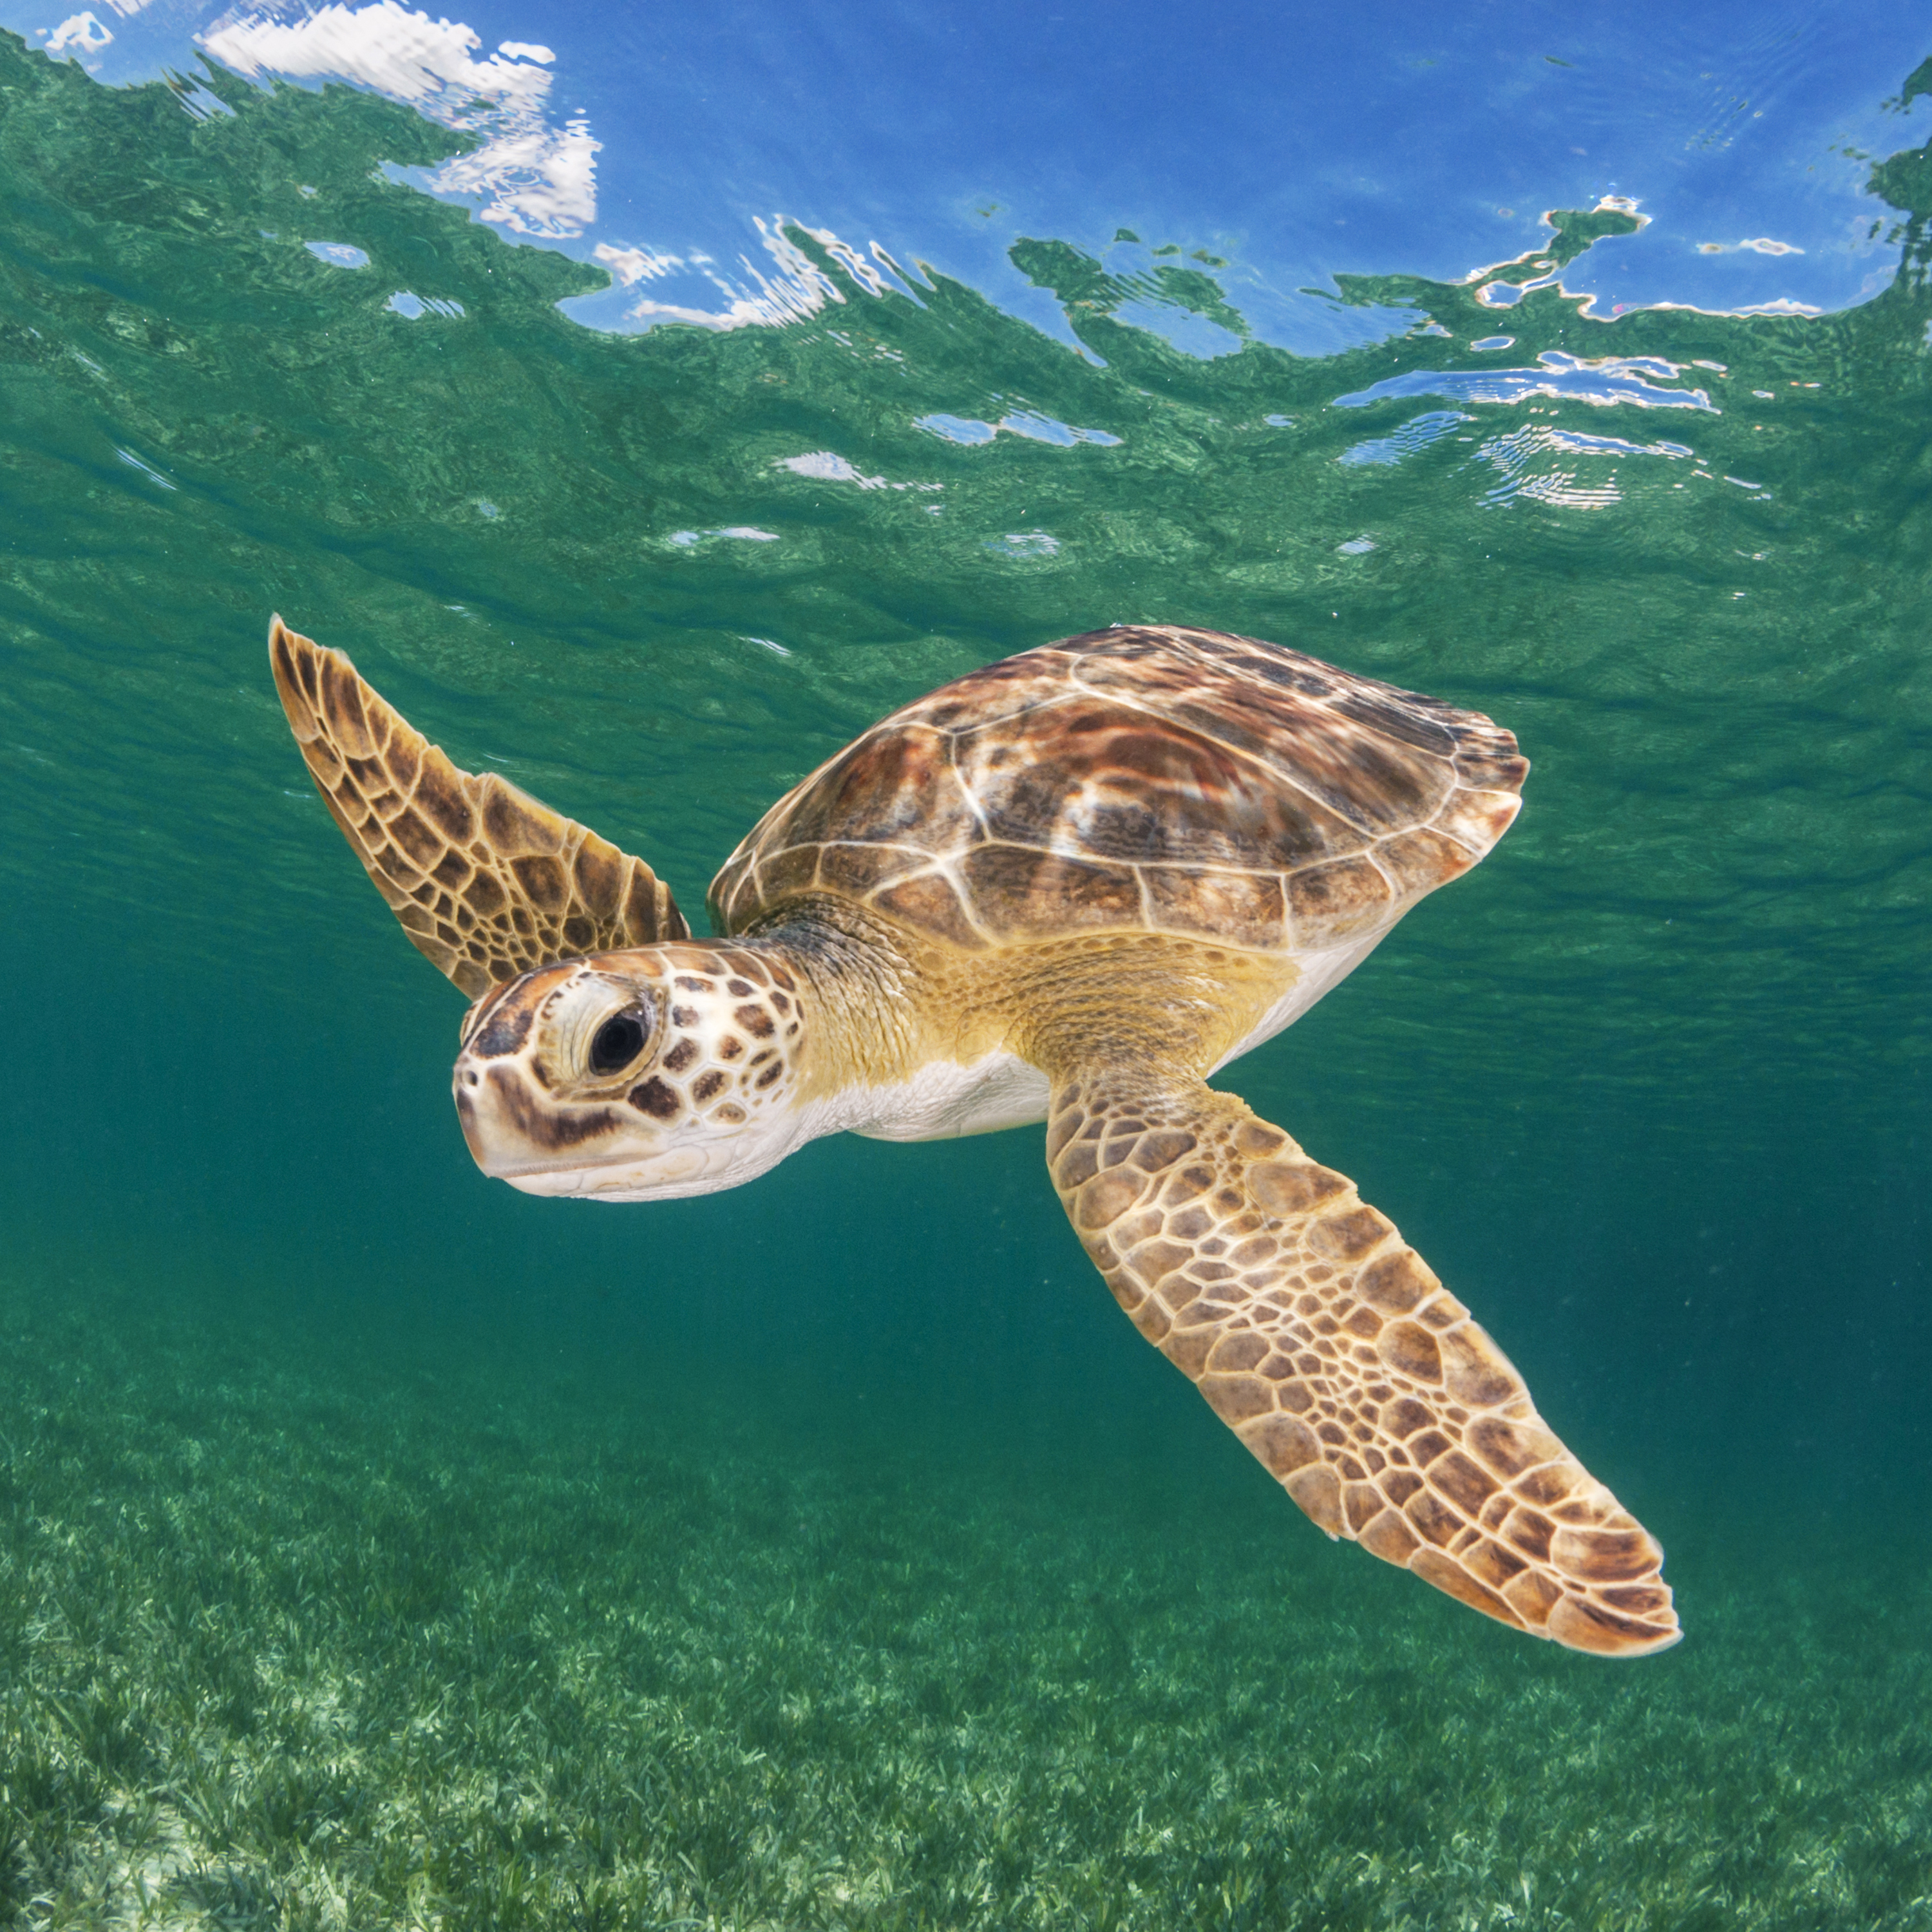 Earthwatch student groups have a variety of expedition options including studying sea turtles in the Bahamas